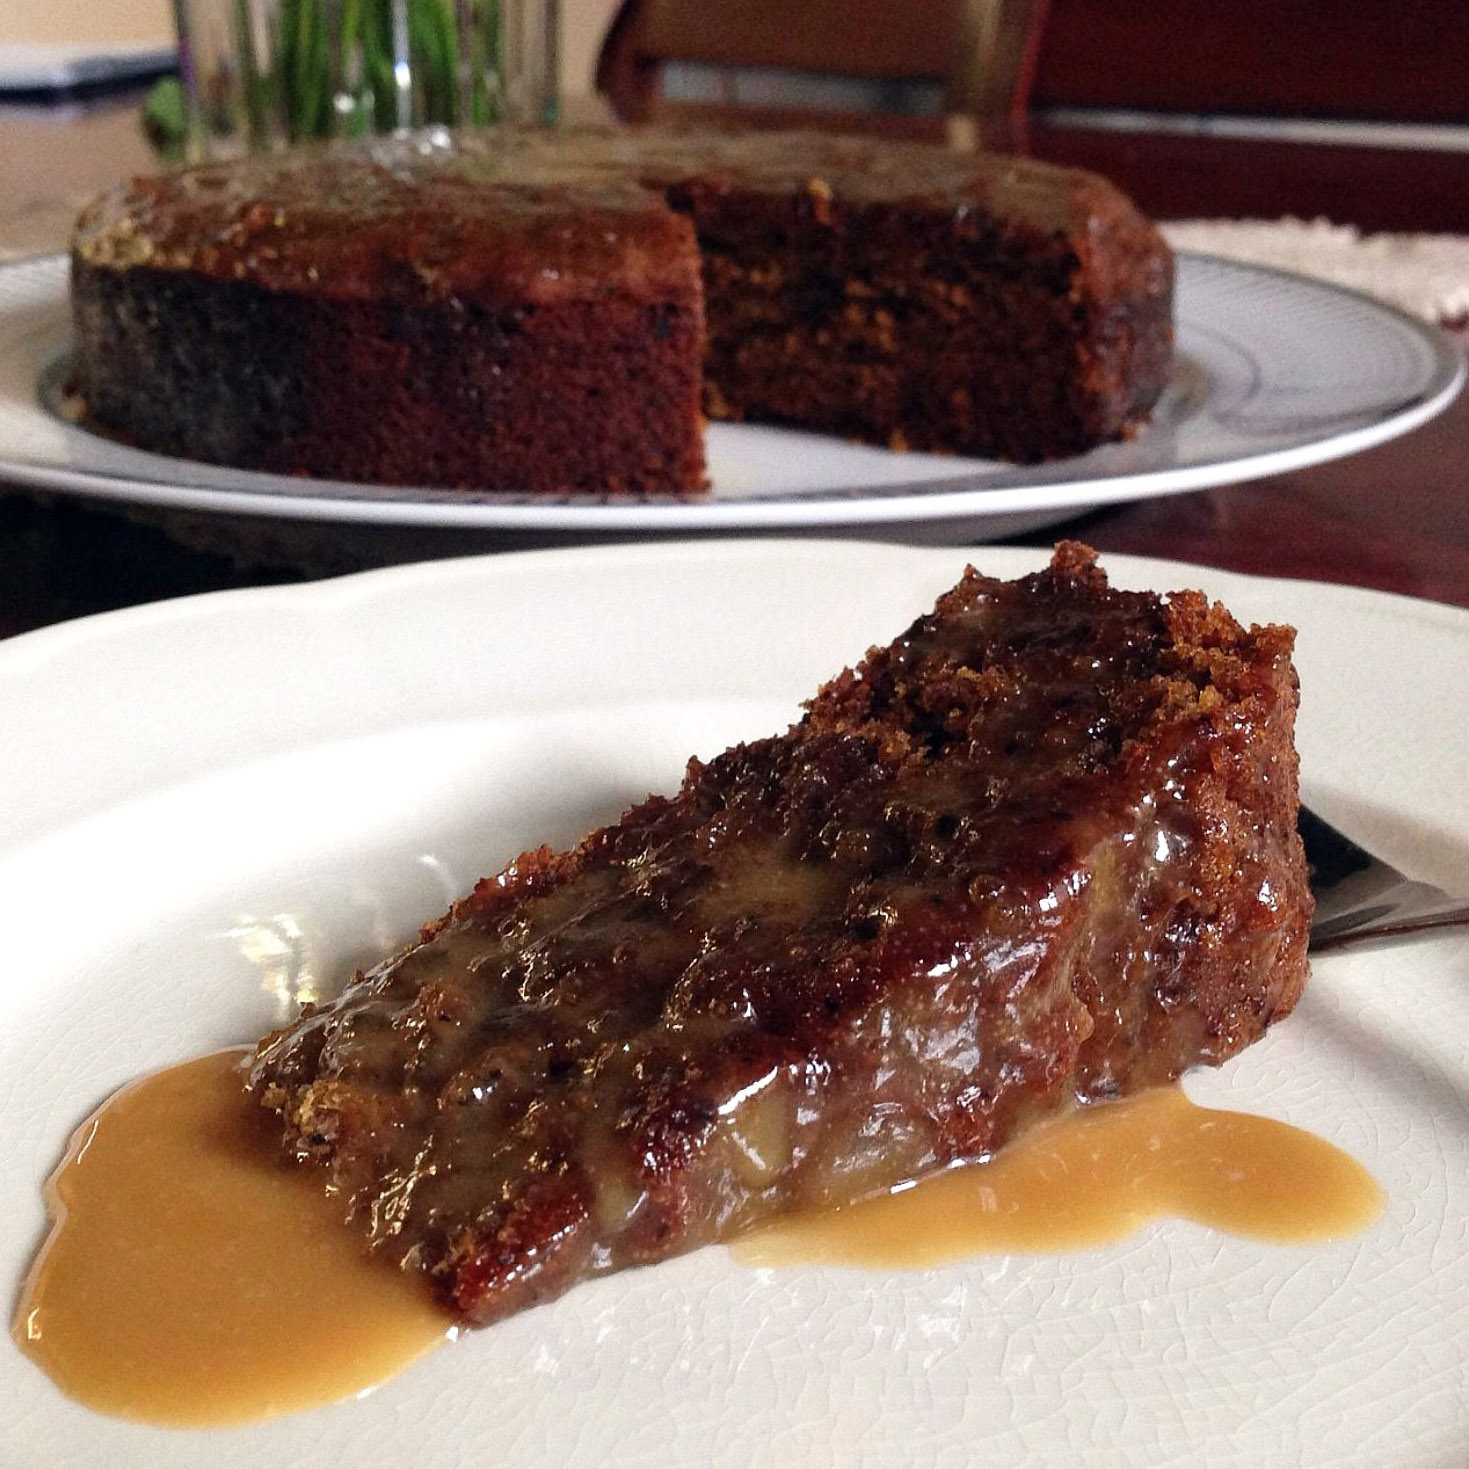 Date pudding